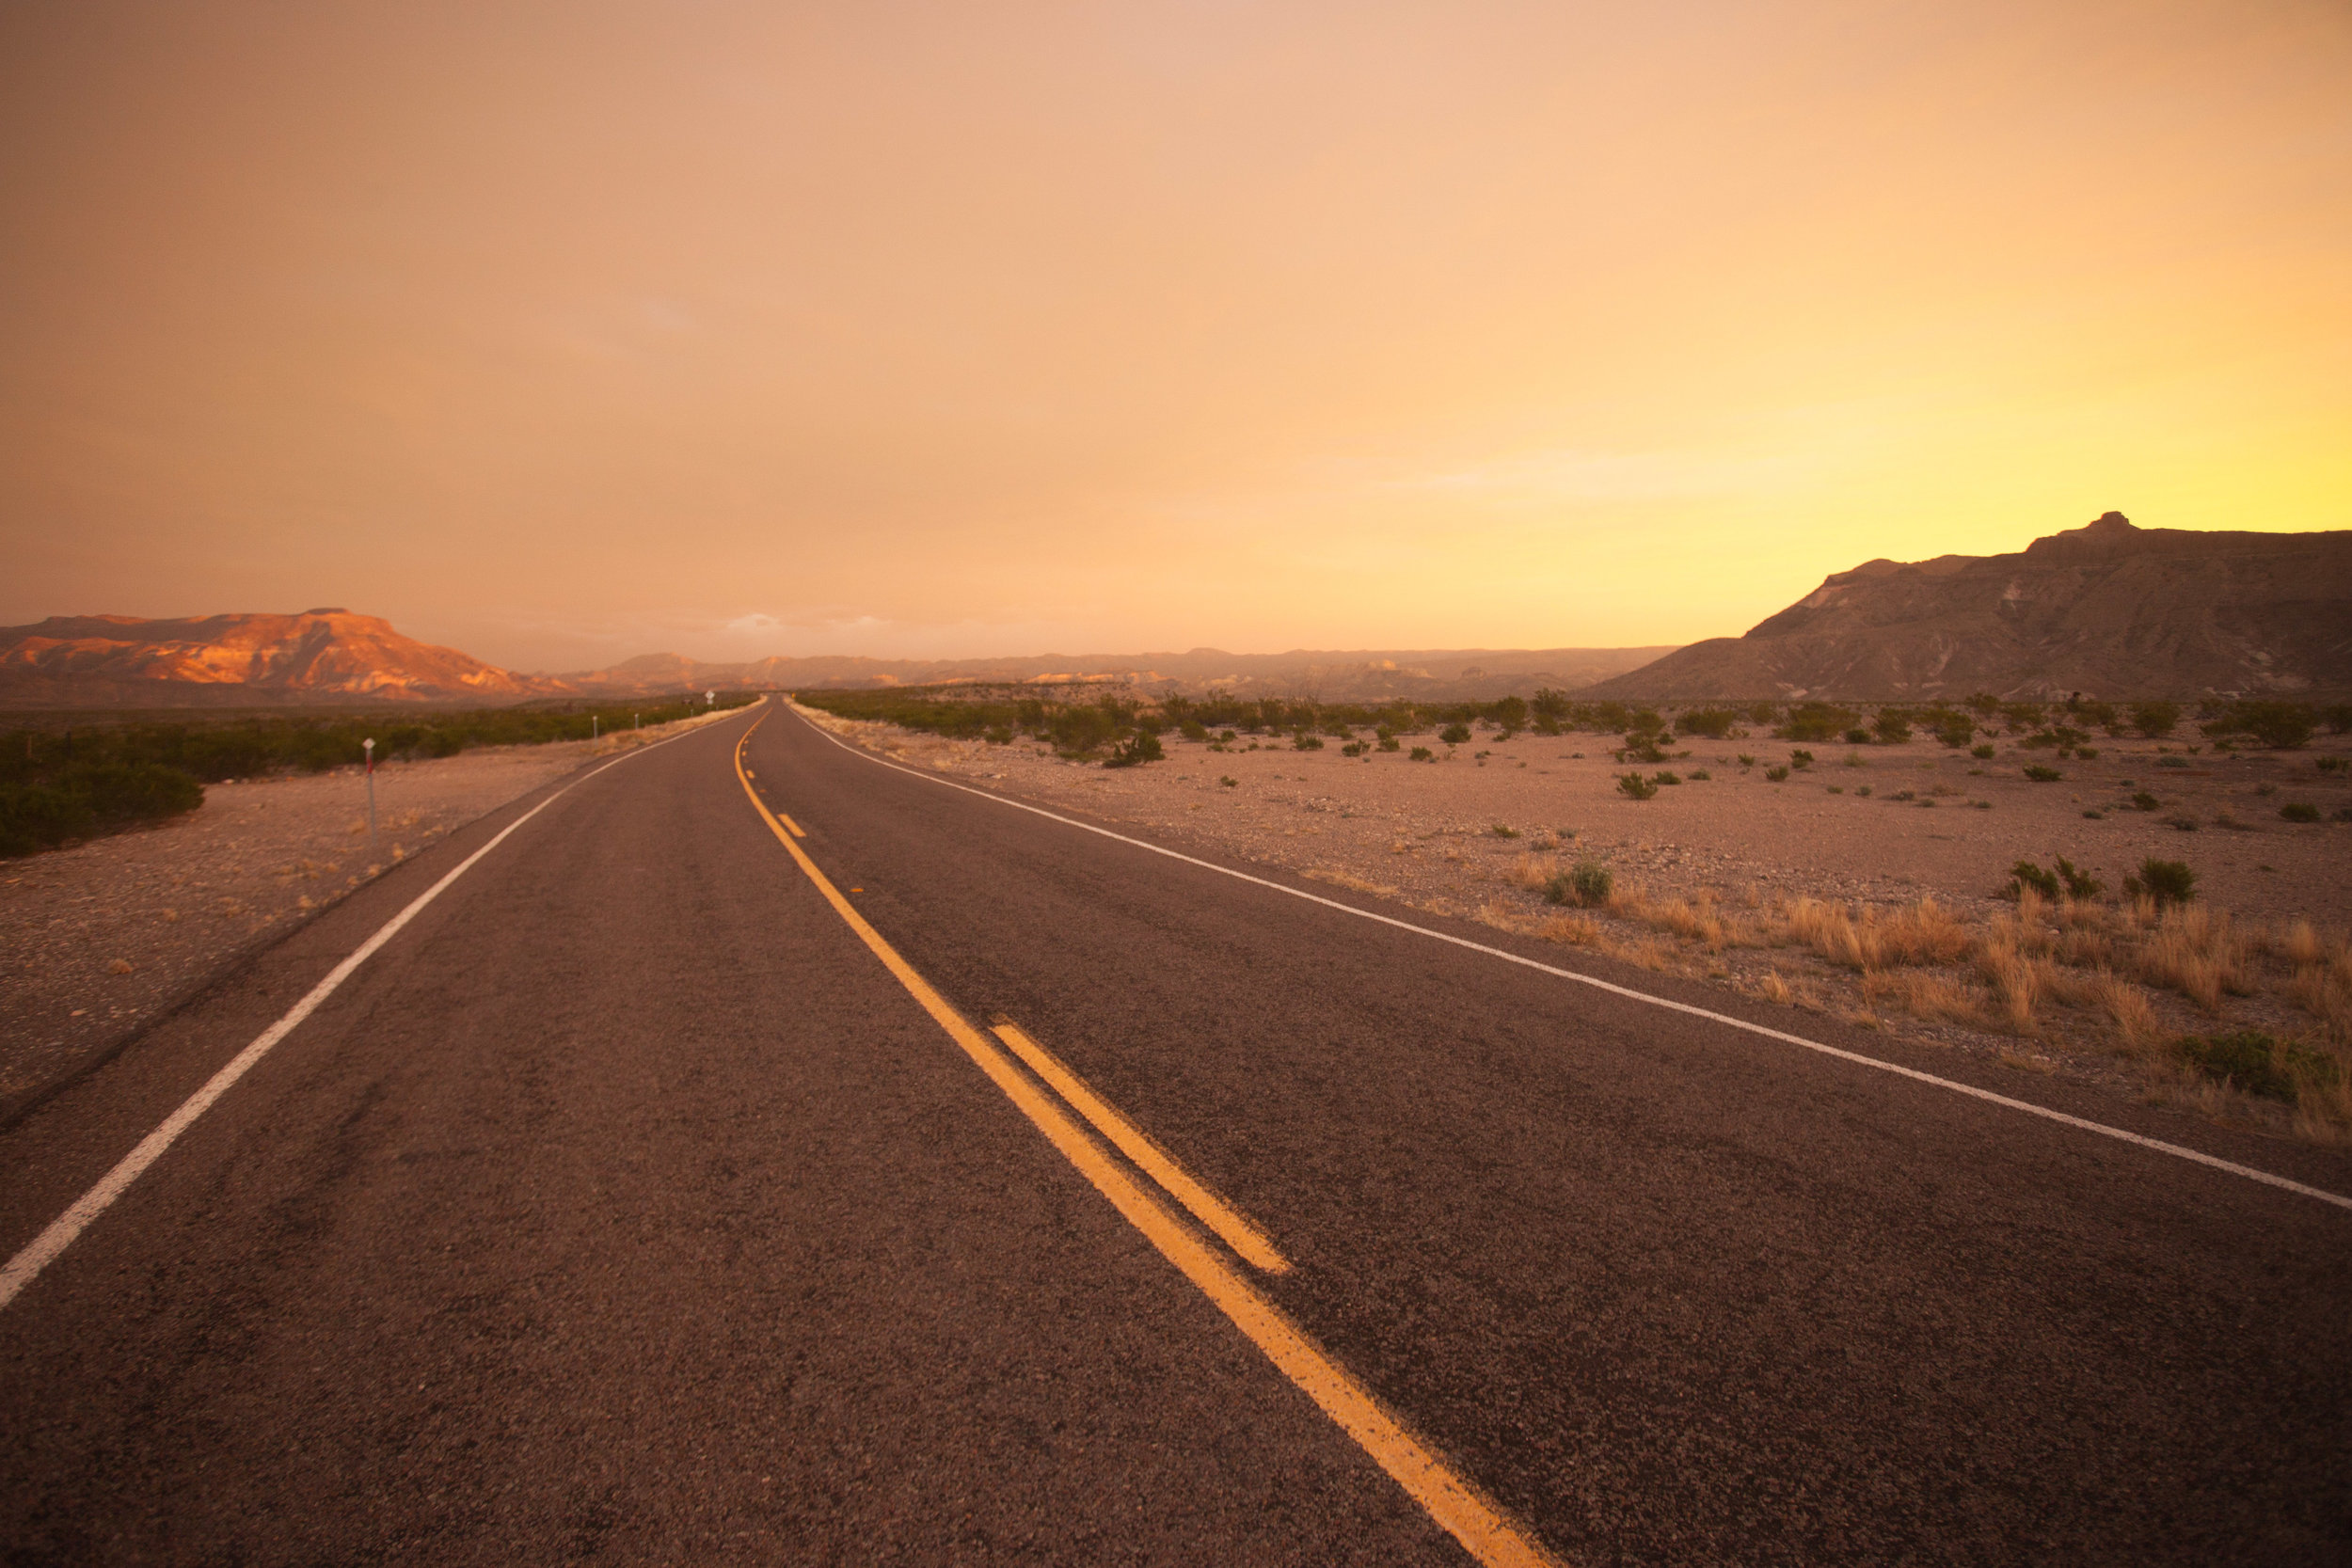 A road just outside of Big Bend National Park at dawn